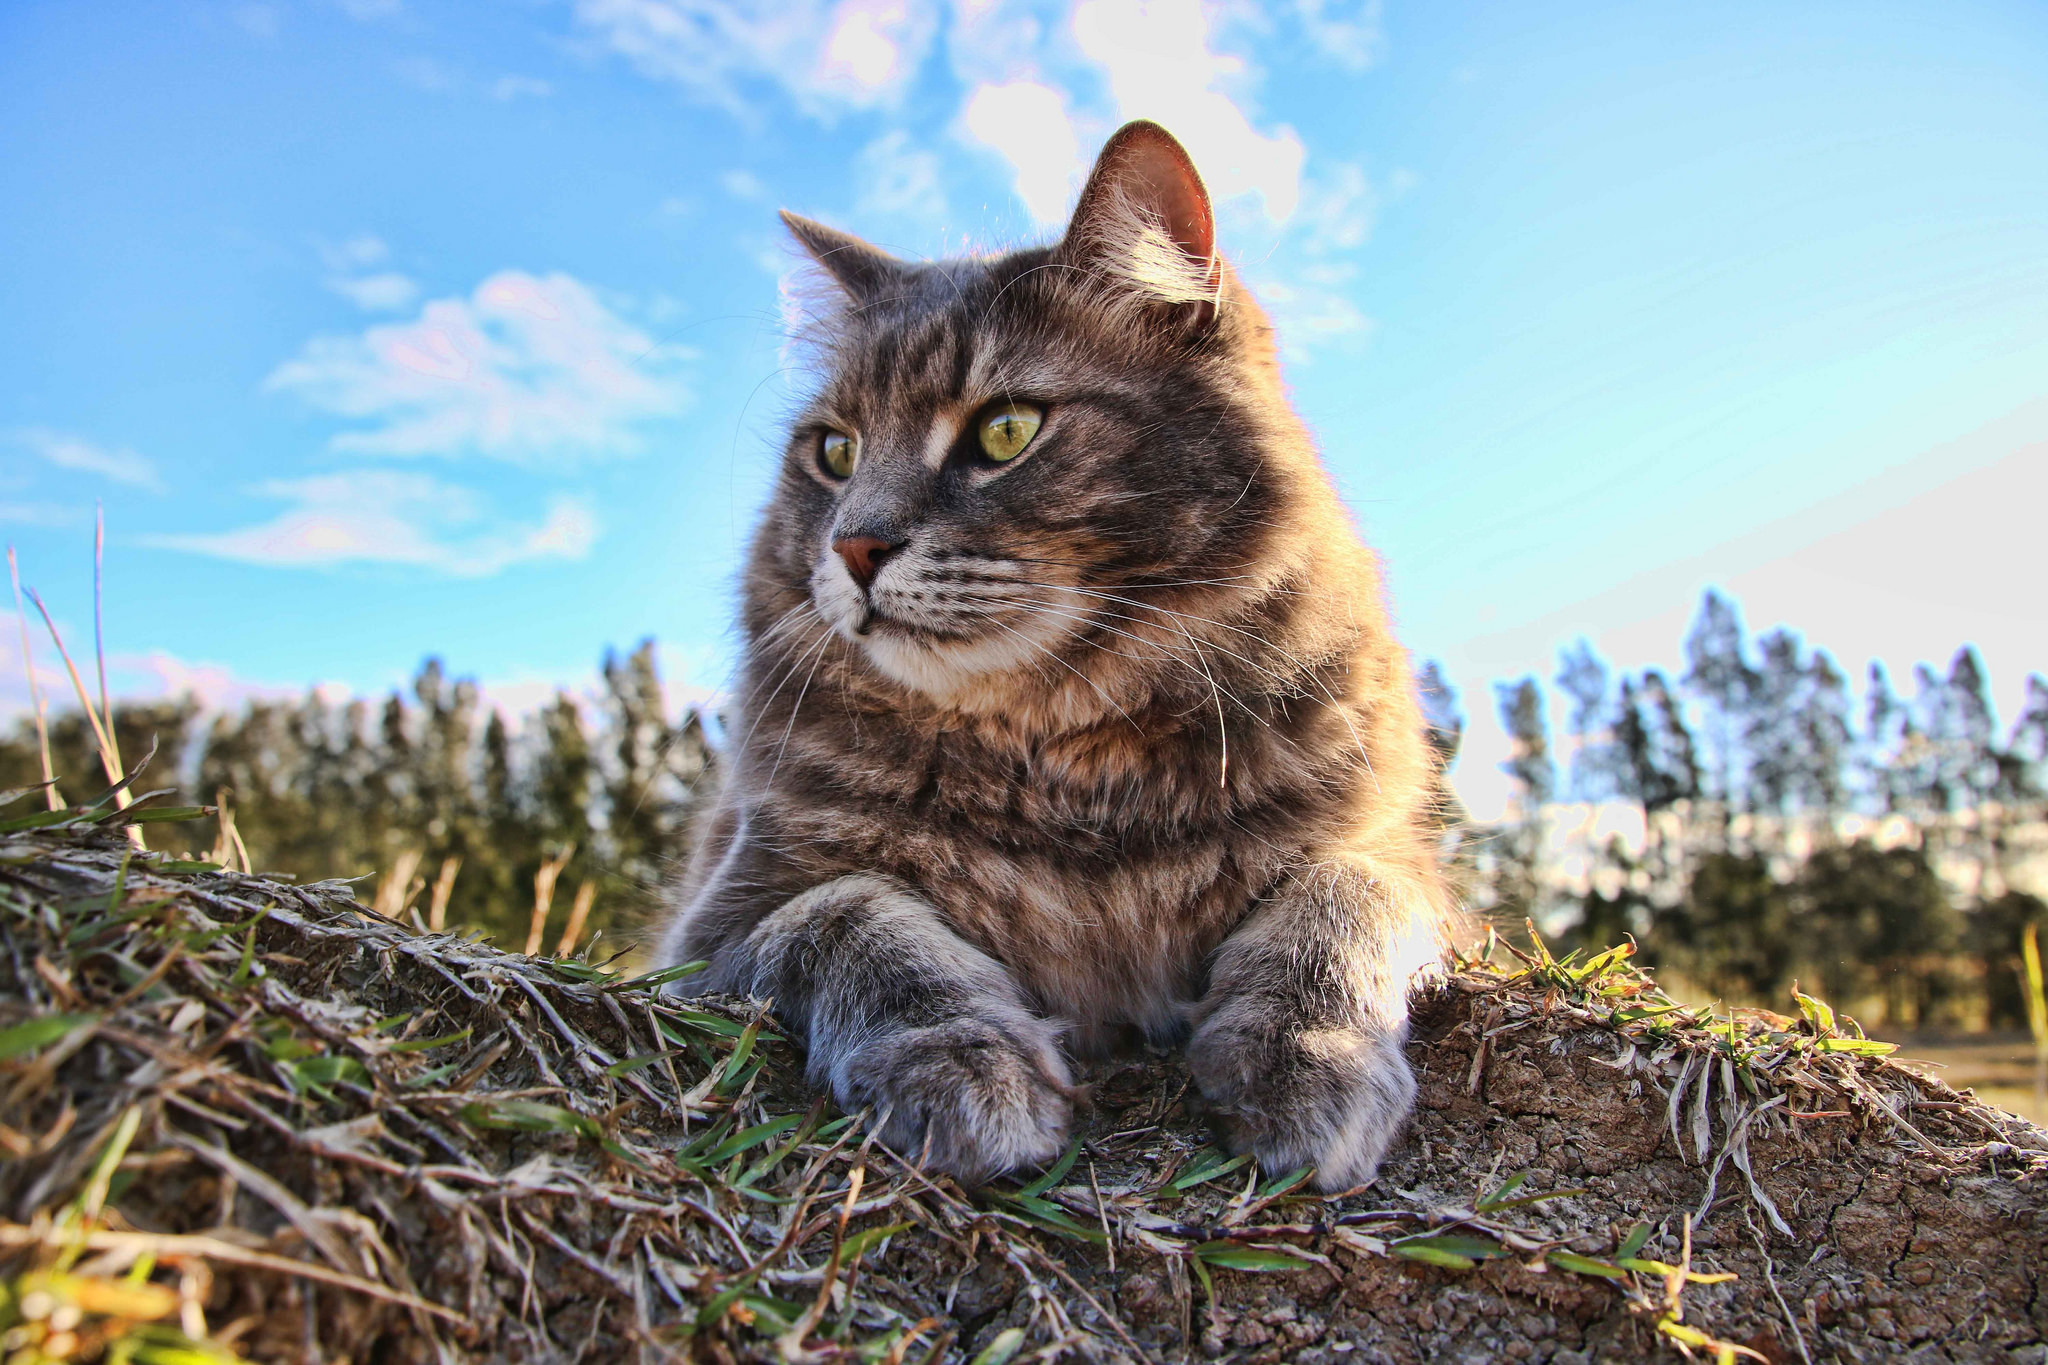 Cute Cat Hd Wallpapers For Mobile Cat 4k Hd Animals 4k Wallpapers Images Backgrounds